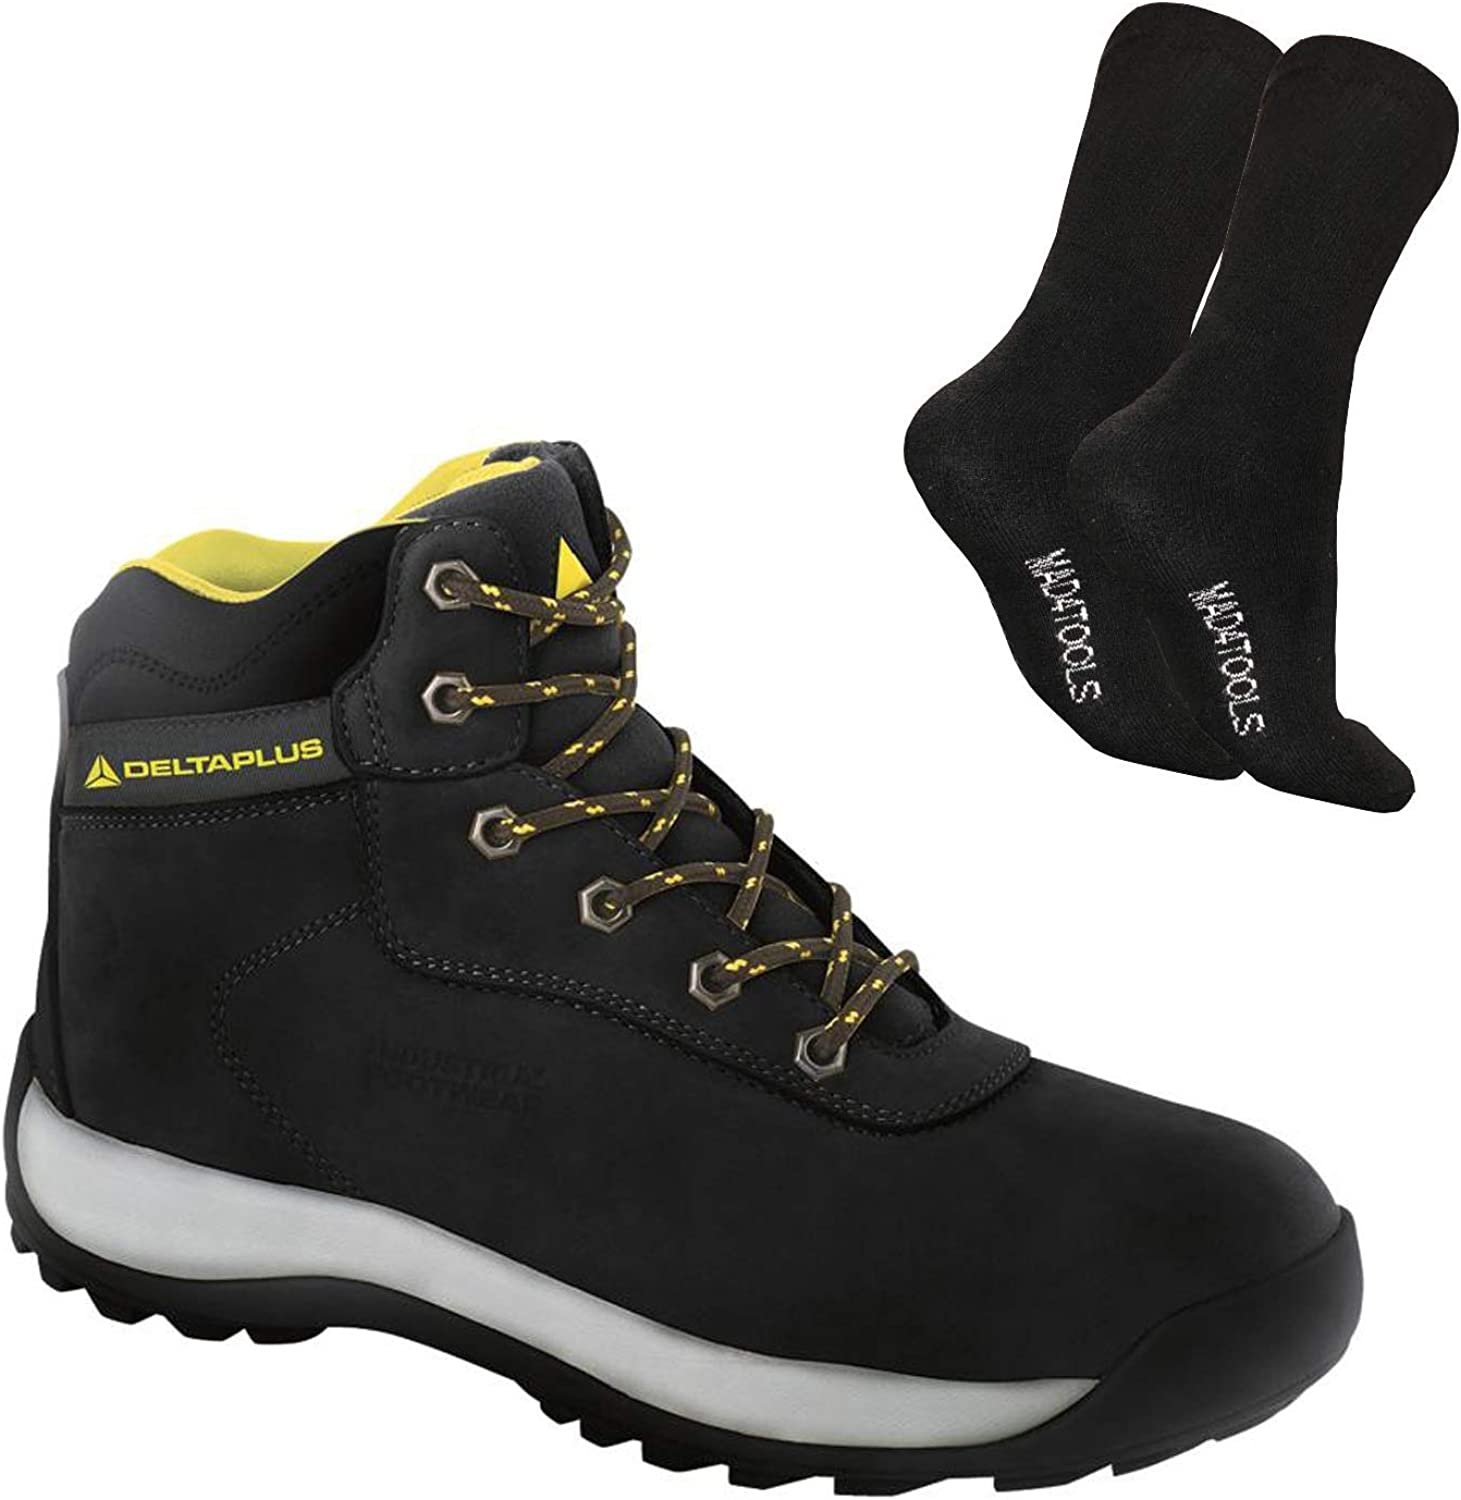 1 Pair Delta Plus LH842 Nubuck Leather Steel Toe Cap Hiker Safety Work Boots Black Sizes 7-12 /& mad4tools Work Boot Socks